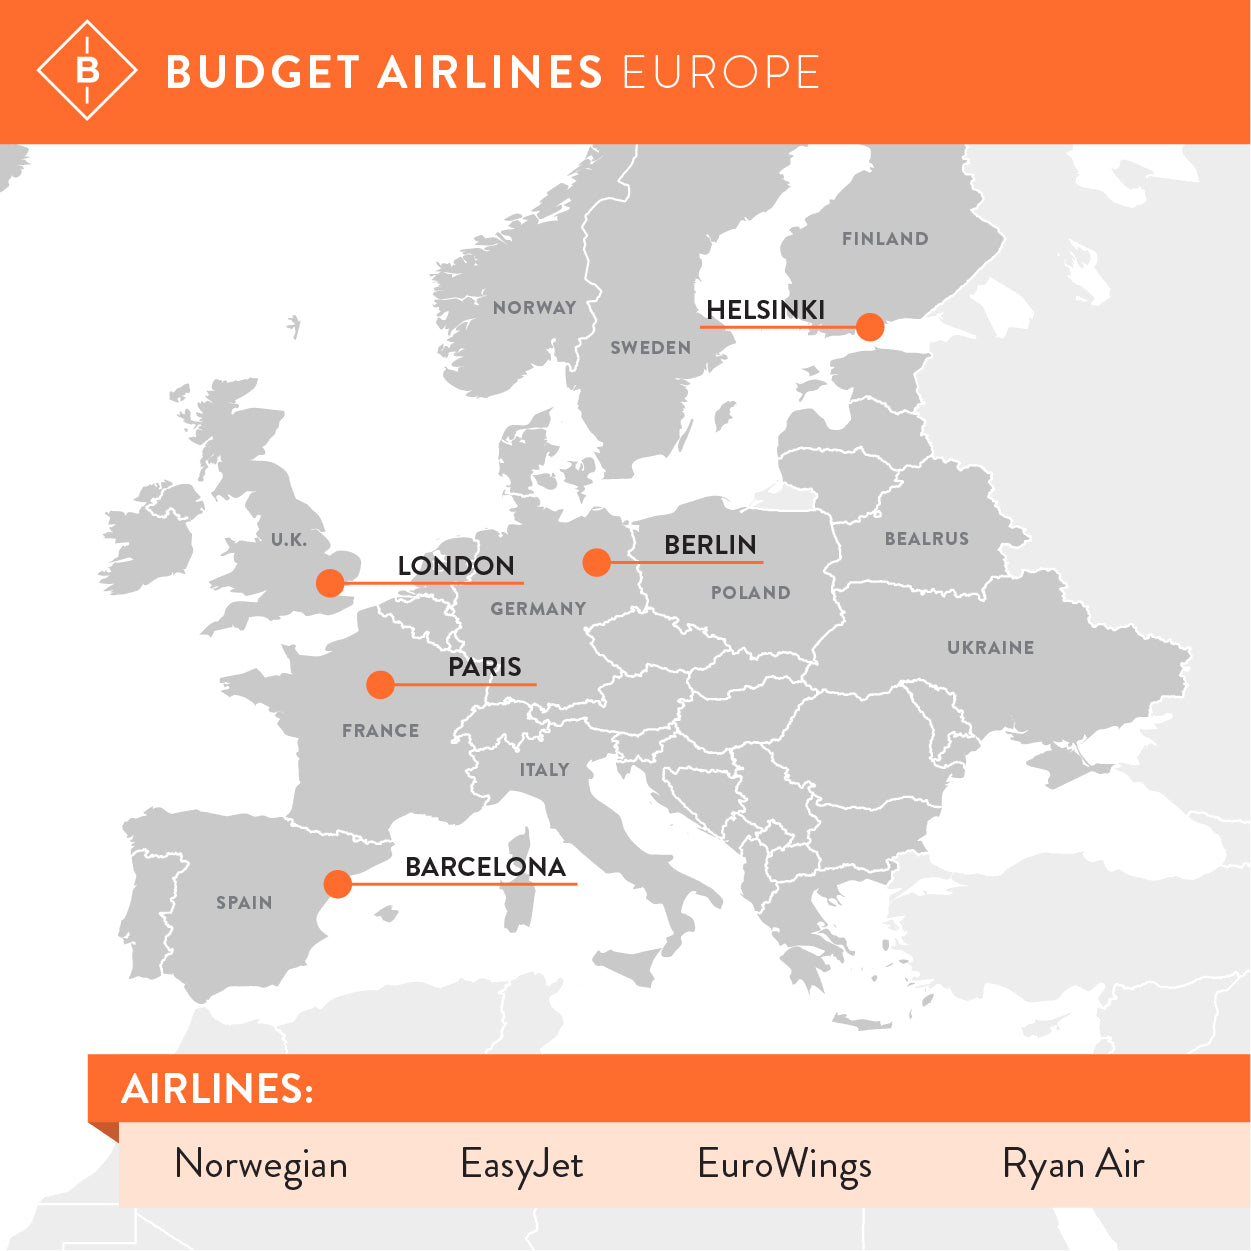 Low cost airline carriers in Europe.